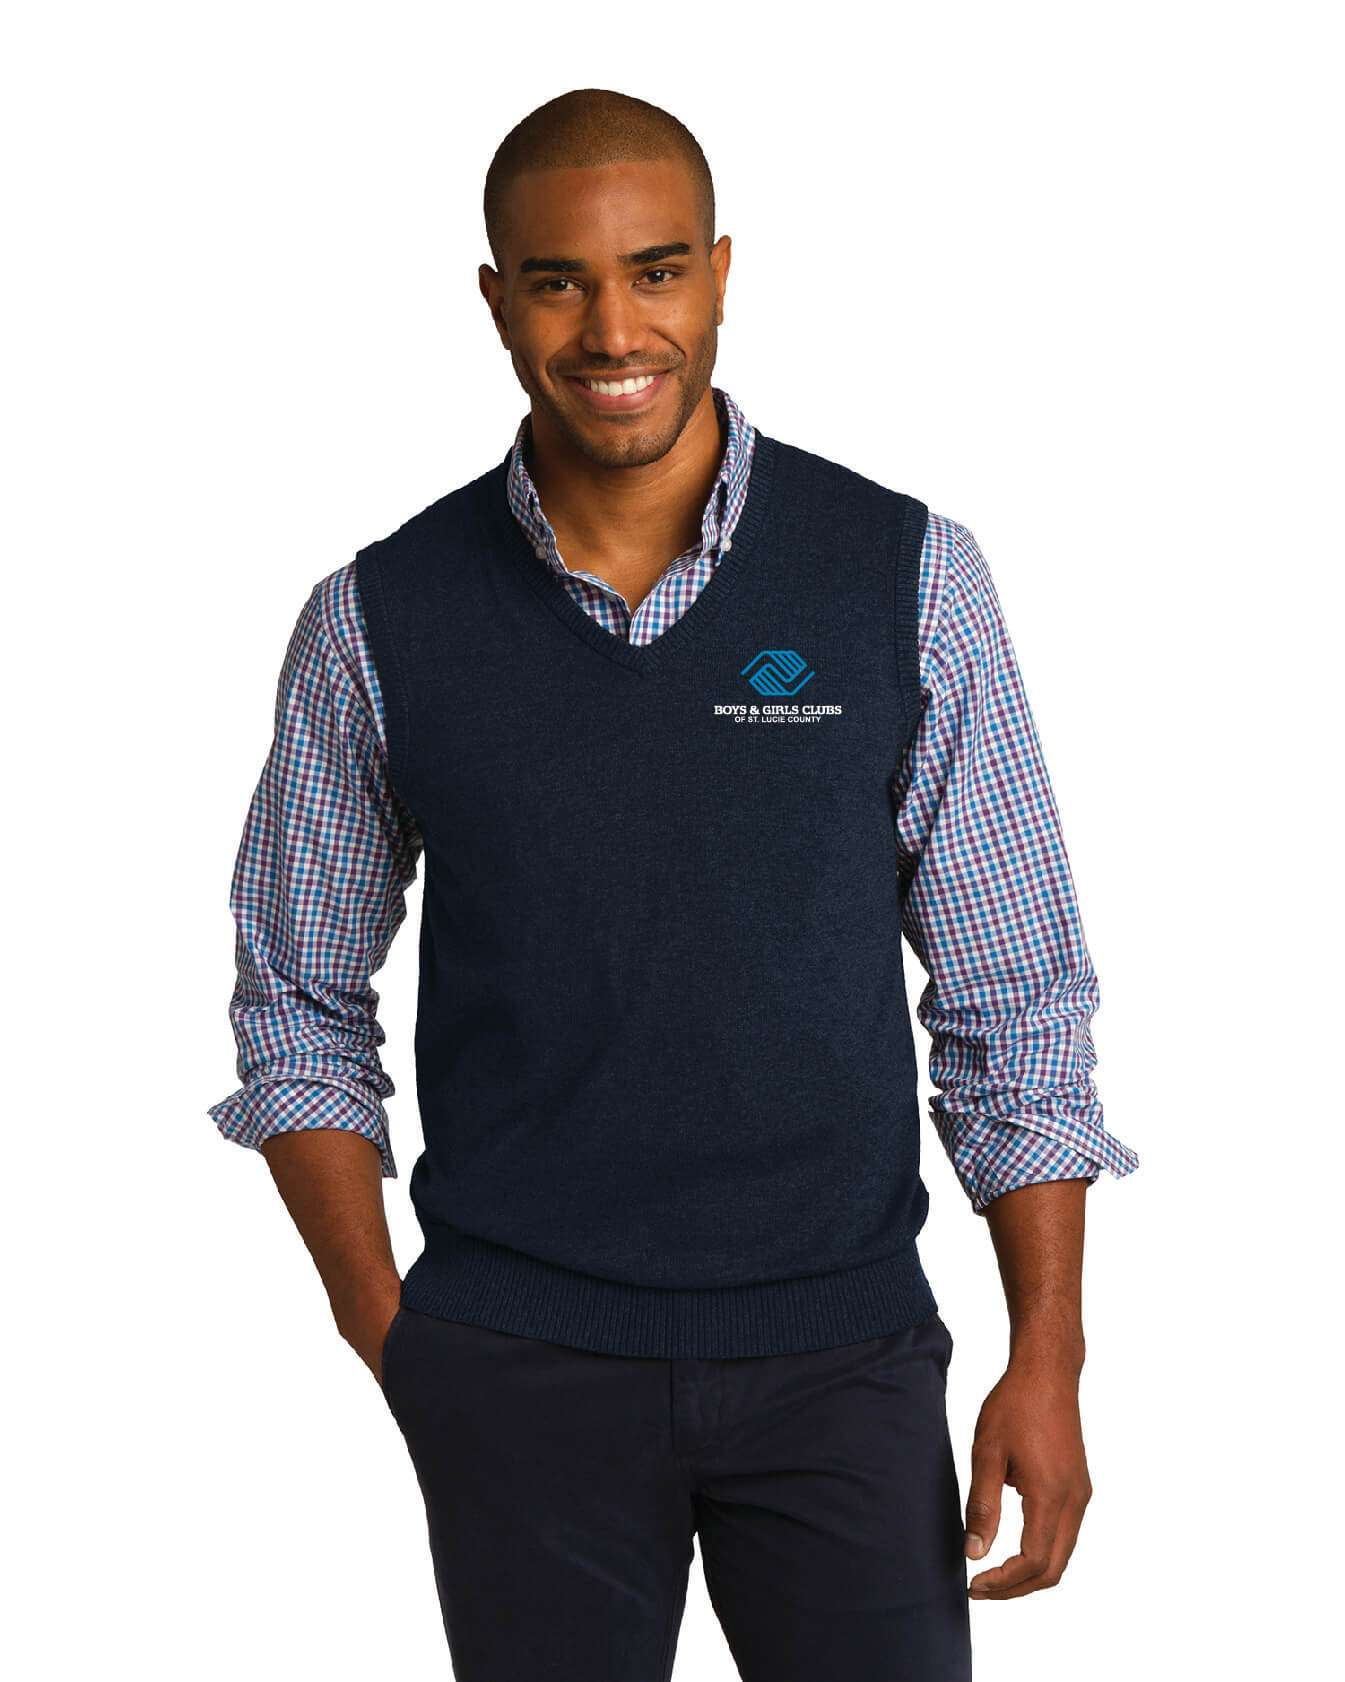 BGC SW286 Port Authority Sweater Vest